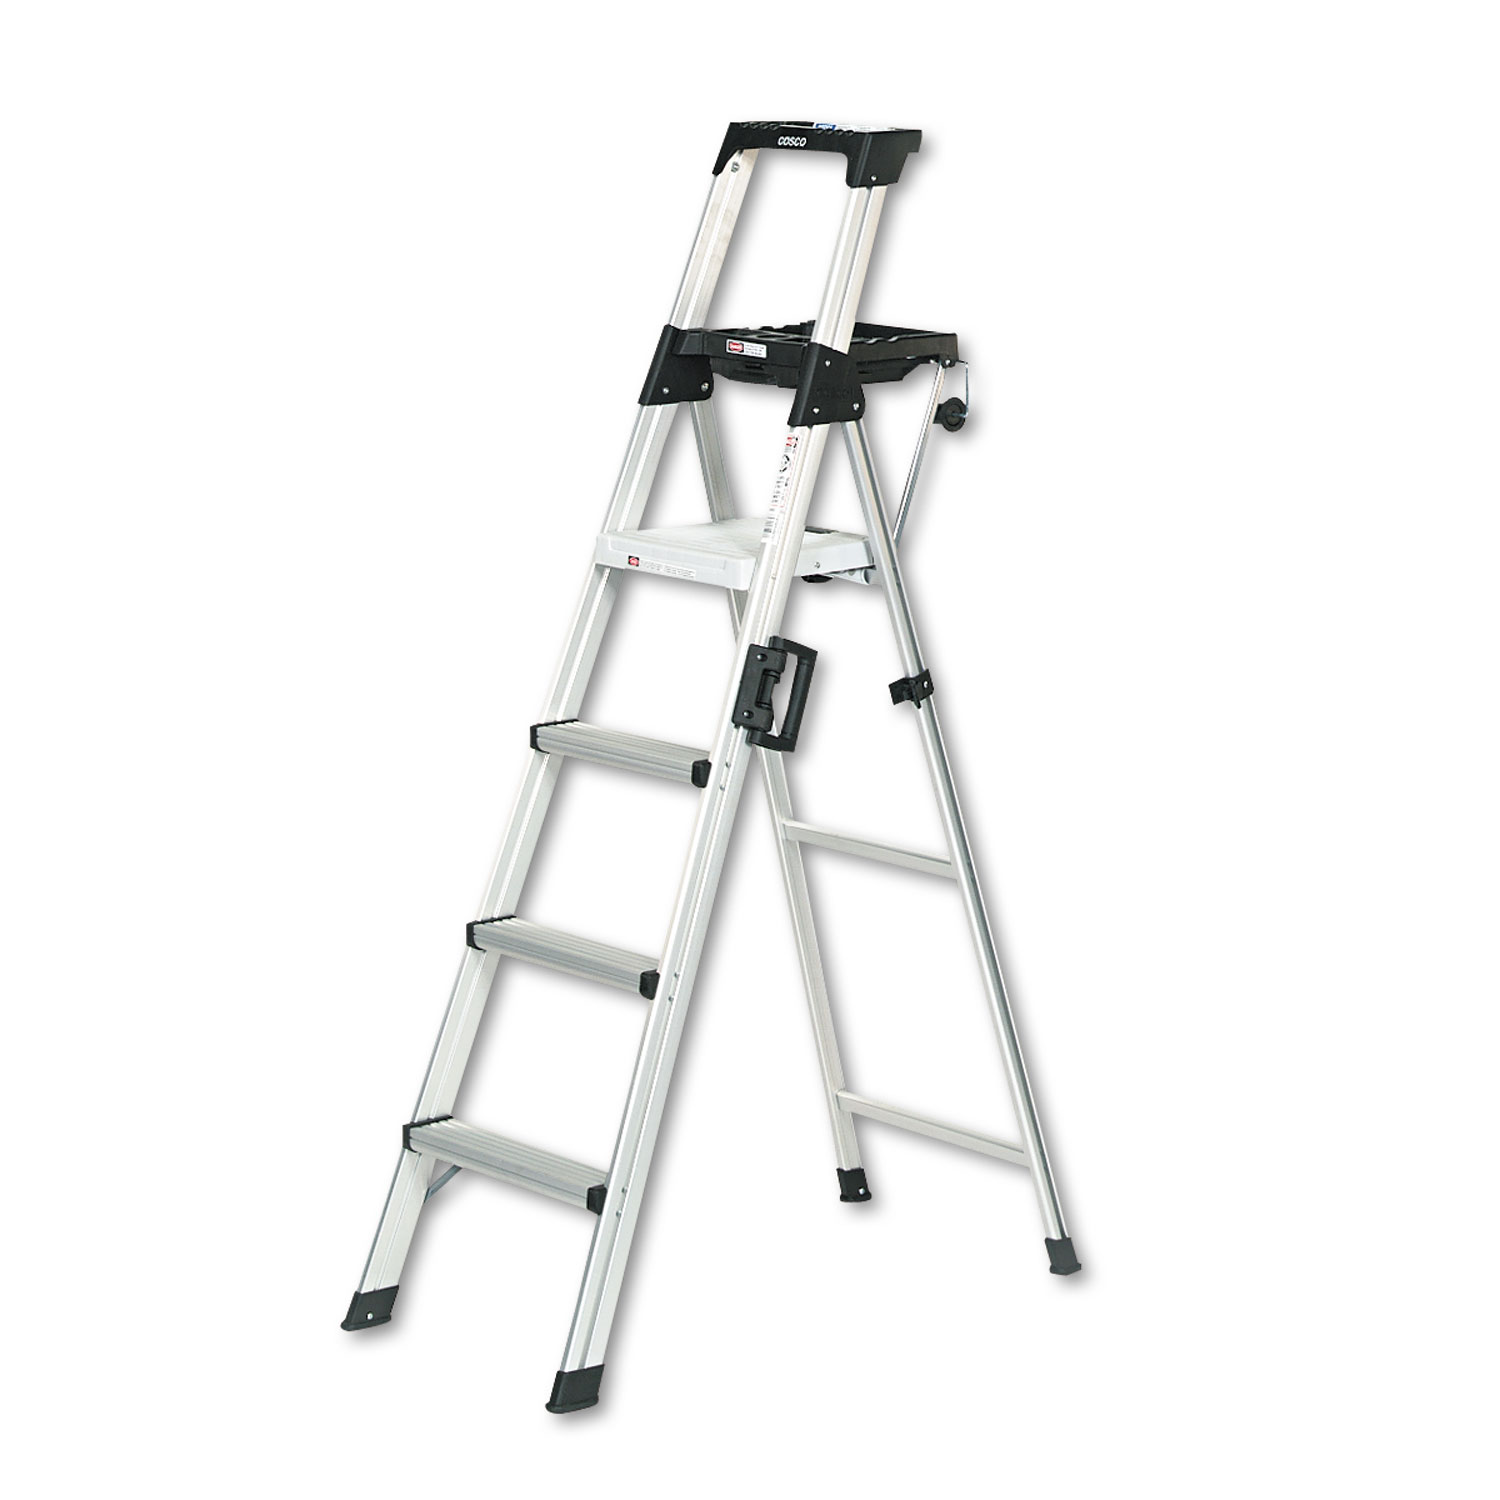 Signature Series Aluminum Folding Step Ladder W Leg Lock